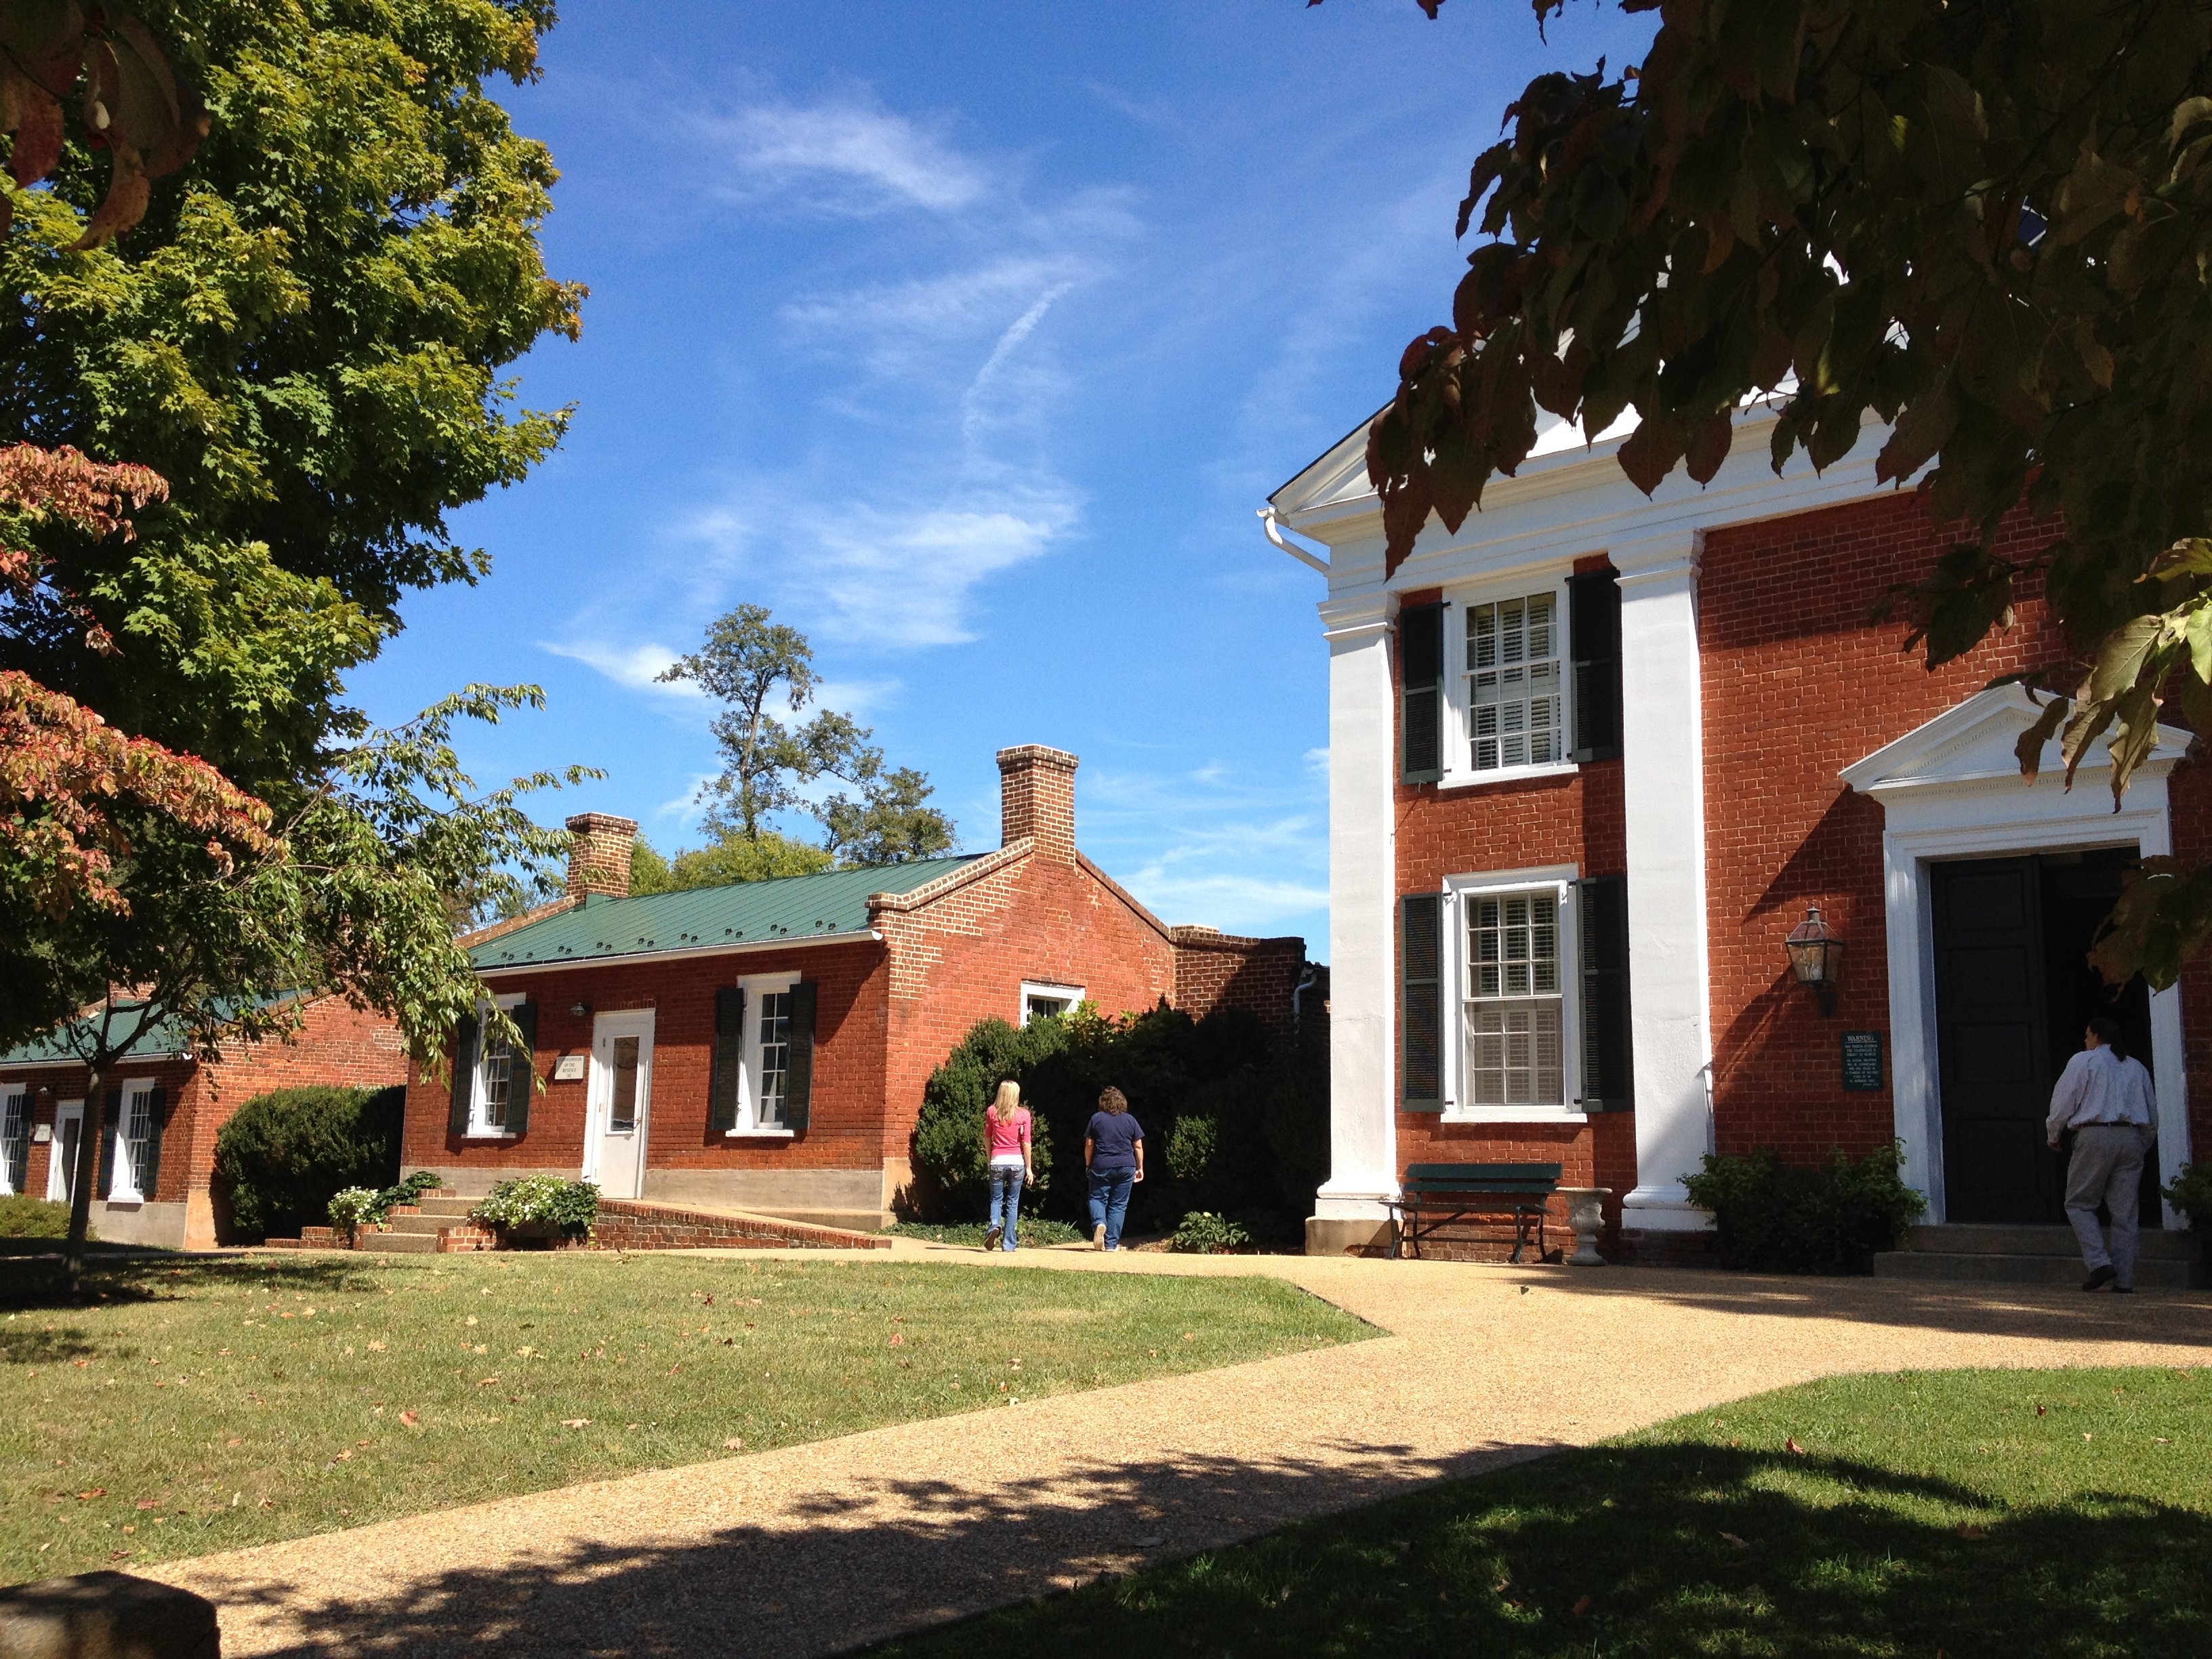 Rappahannock Virginia Government Buildings, showing the Treasury, Revenue Office and Courthouse